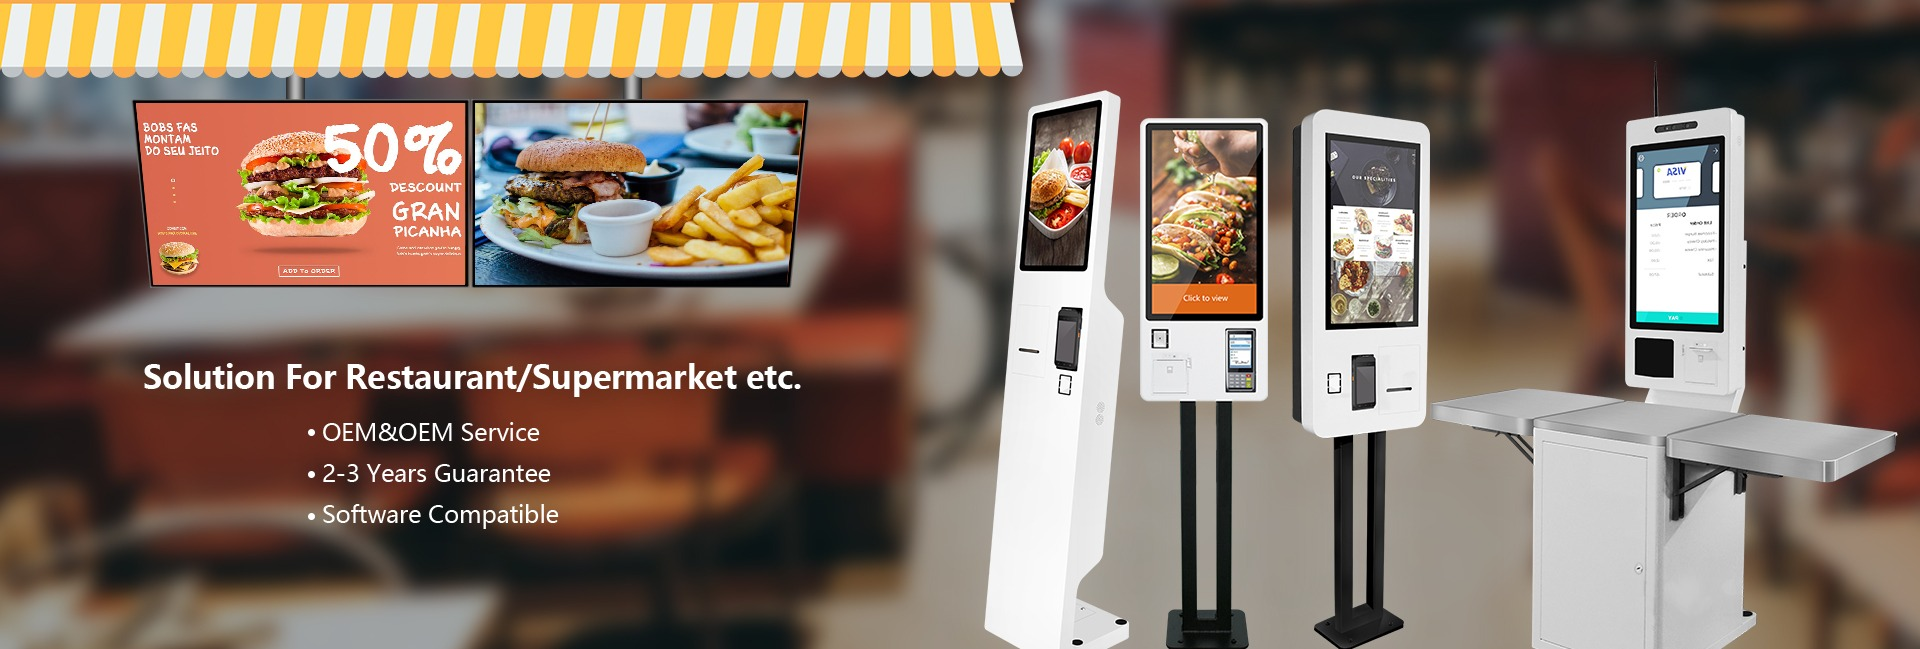 mobile ordering software for restaurants Digital Screens and self order kiosk